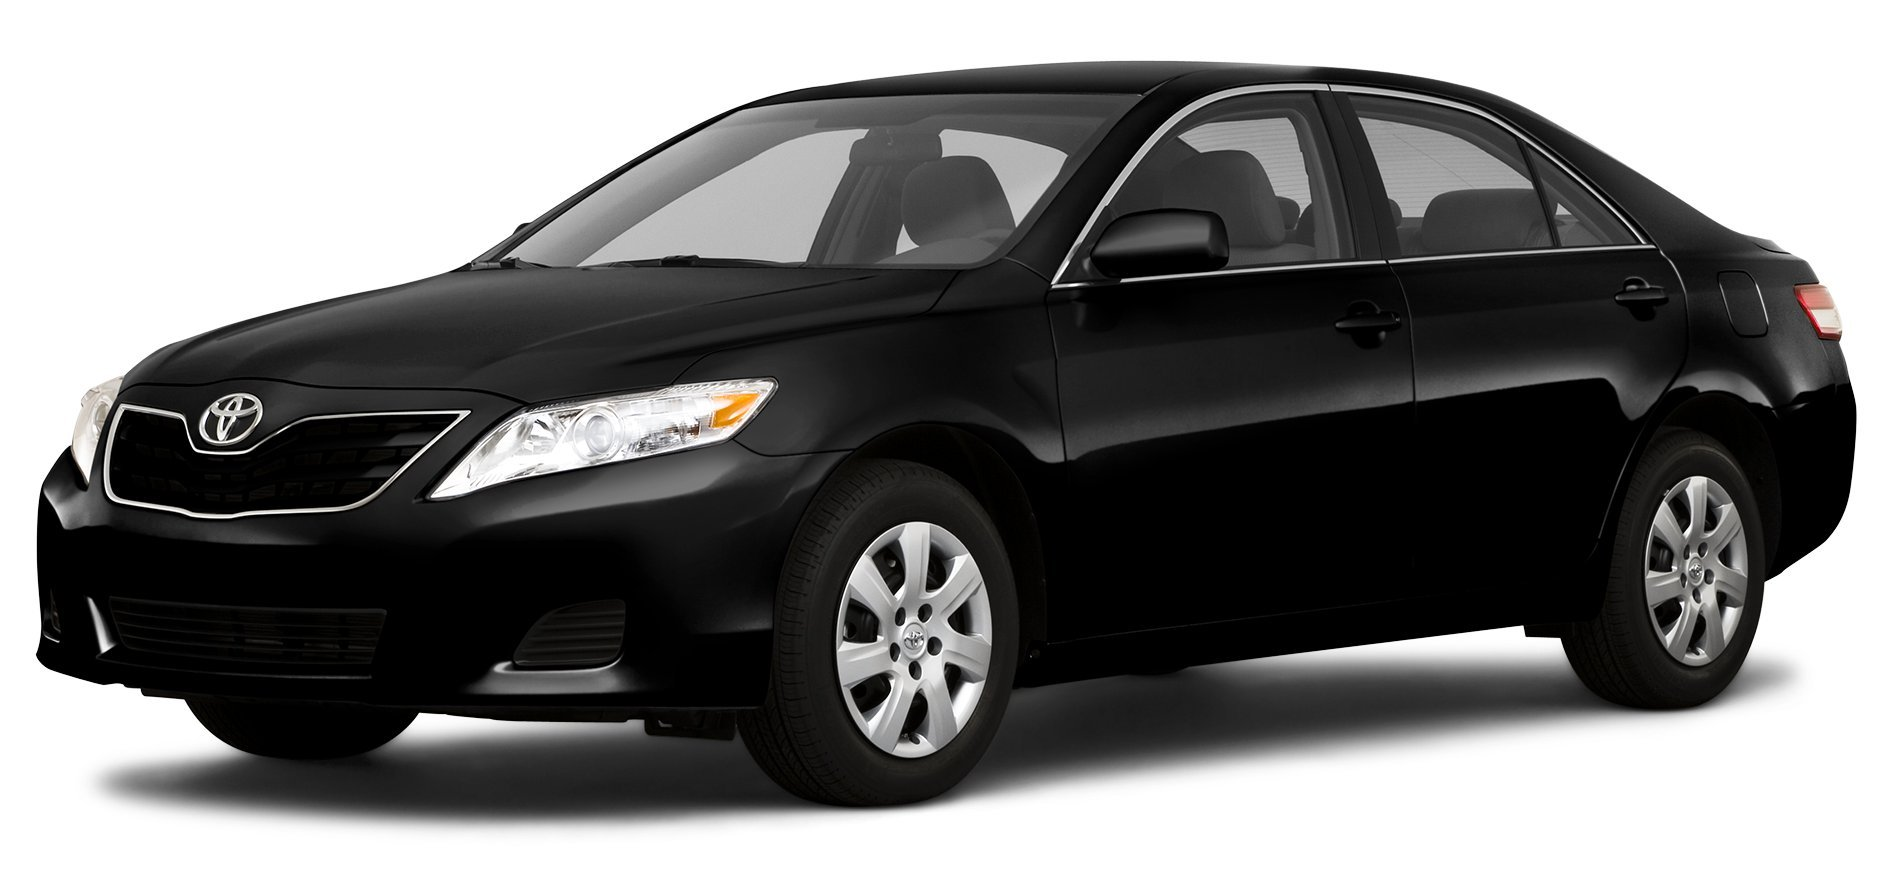 71lOFH5 CrL - 2010 Toyota Camry At